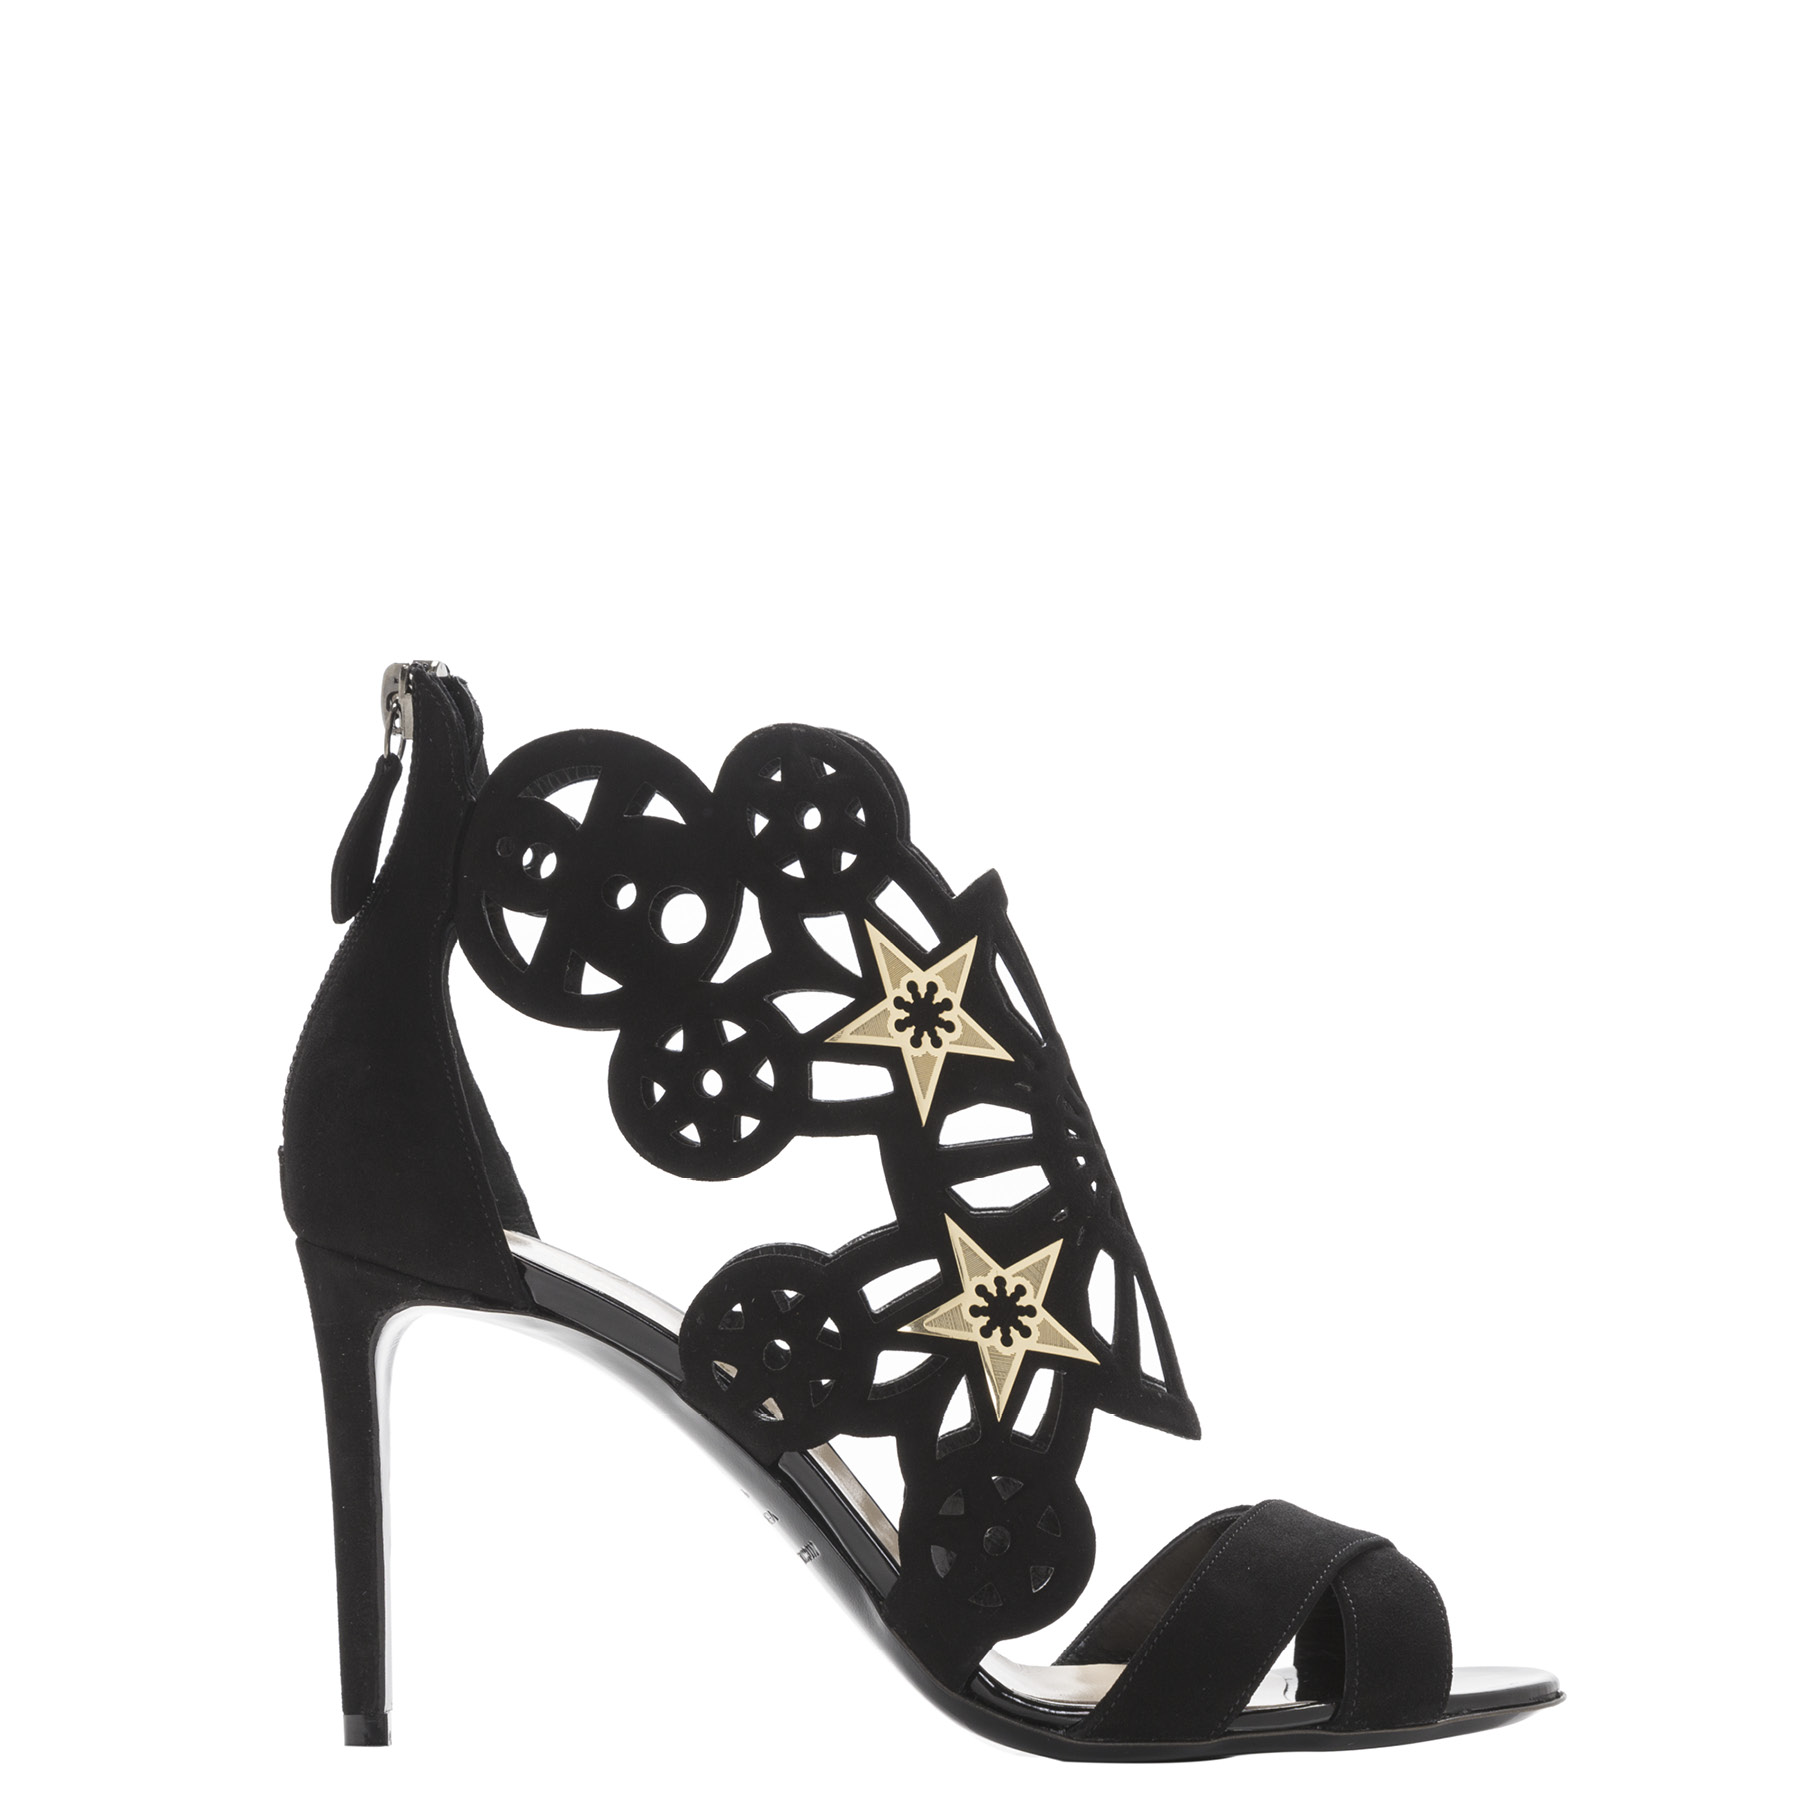 Nicholas-Kirkwood-SS2015-Collection-Sandals.jpeg